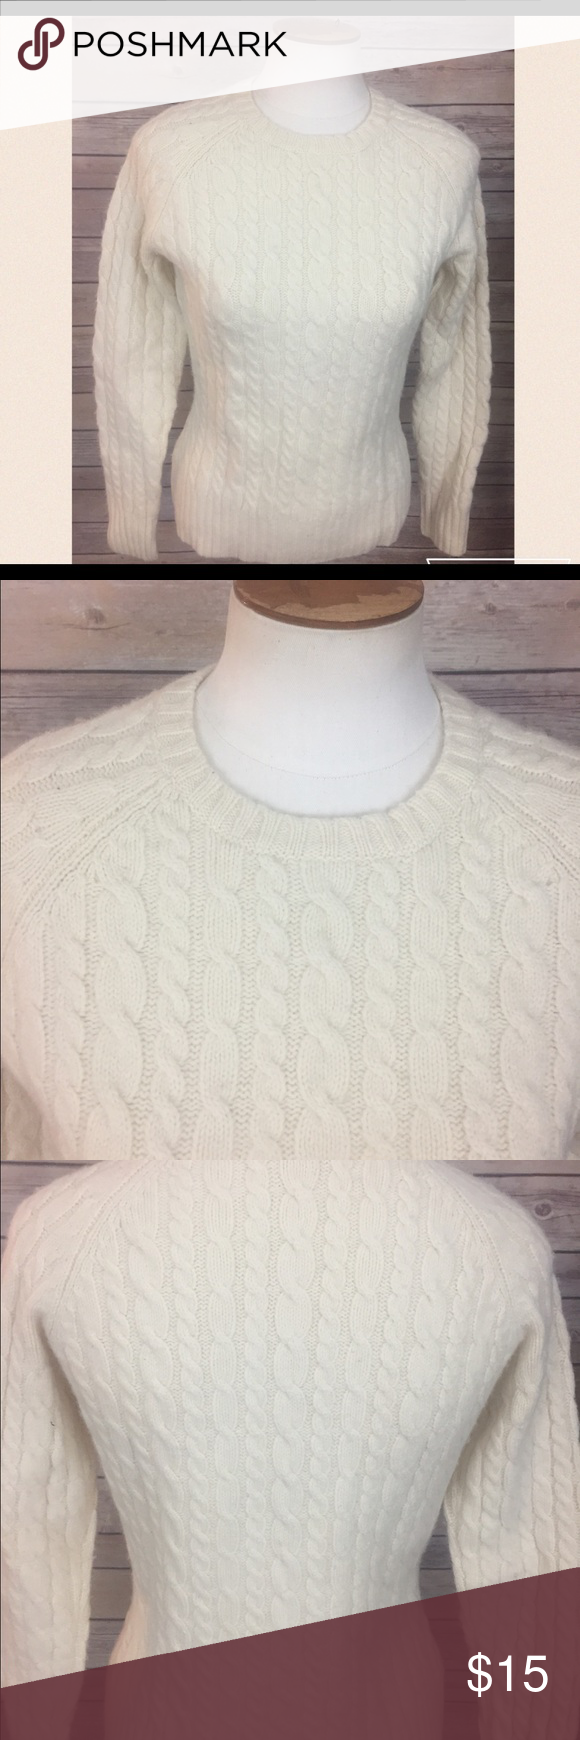 Gap Stretch Cream Cable Knit Sweater. Size Small BRAND: GAP ...